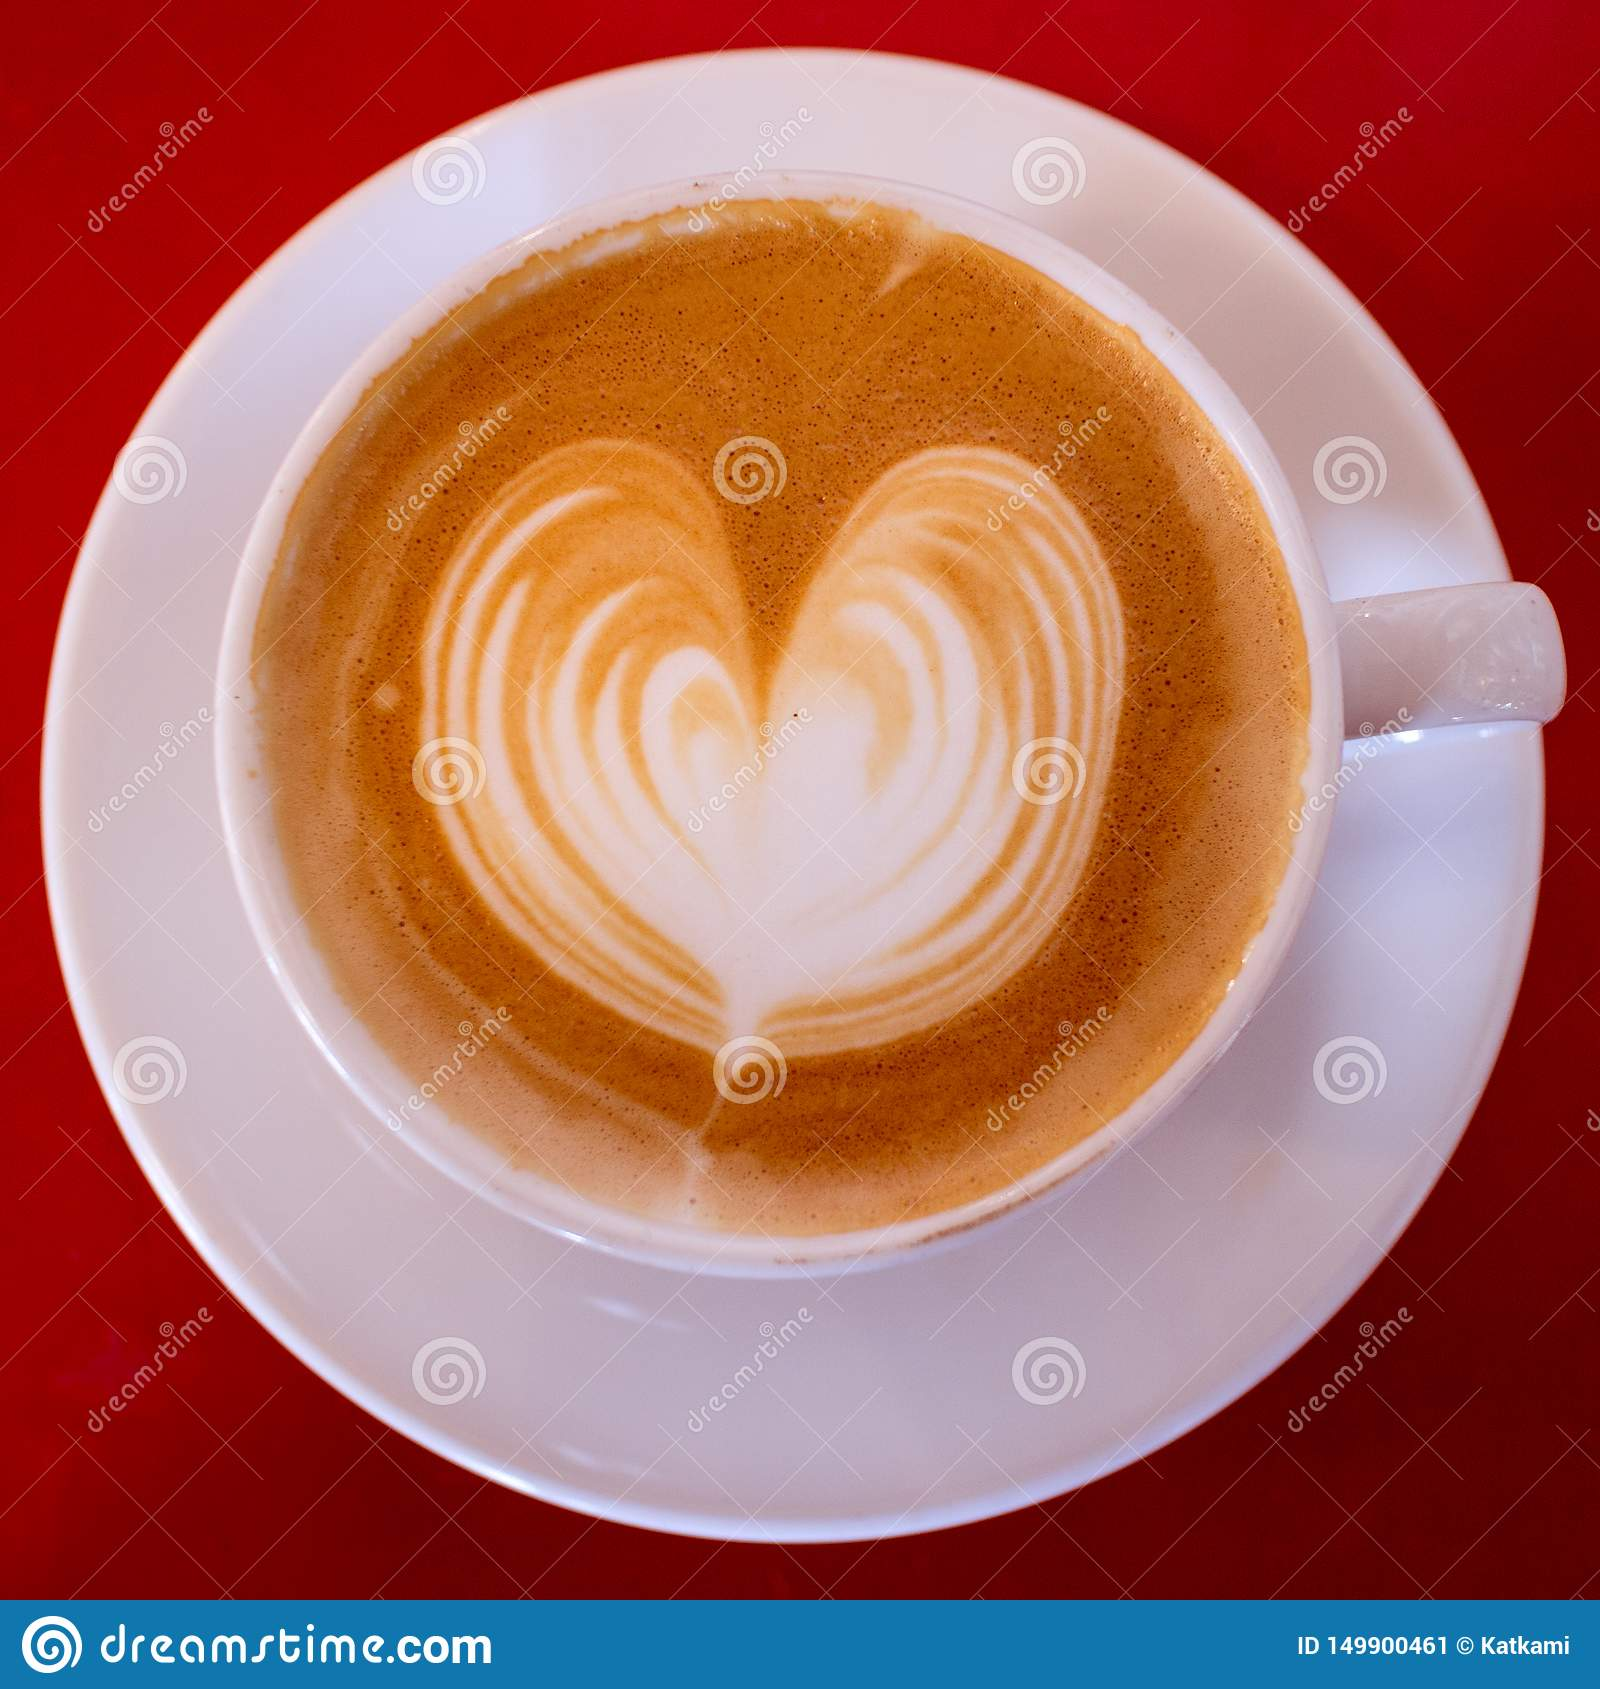 Cappuccino with Heart in White Mug